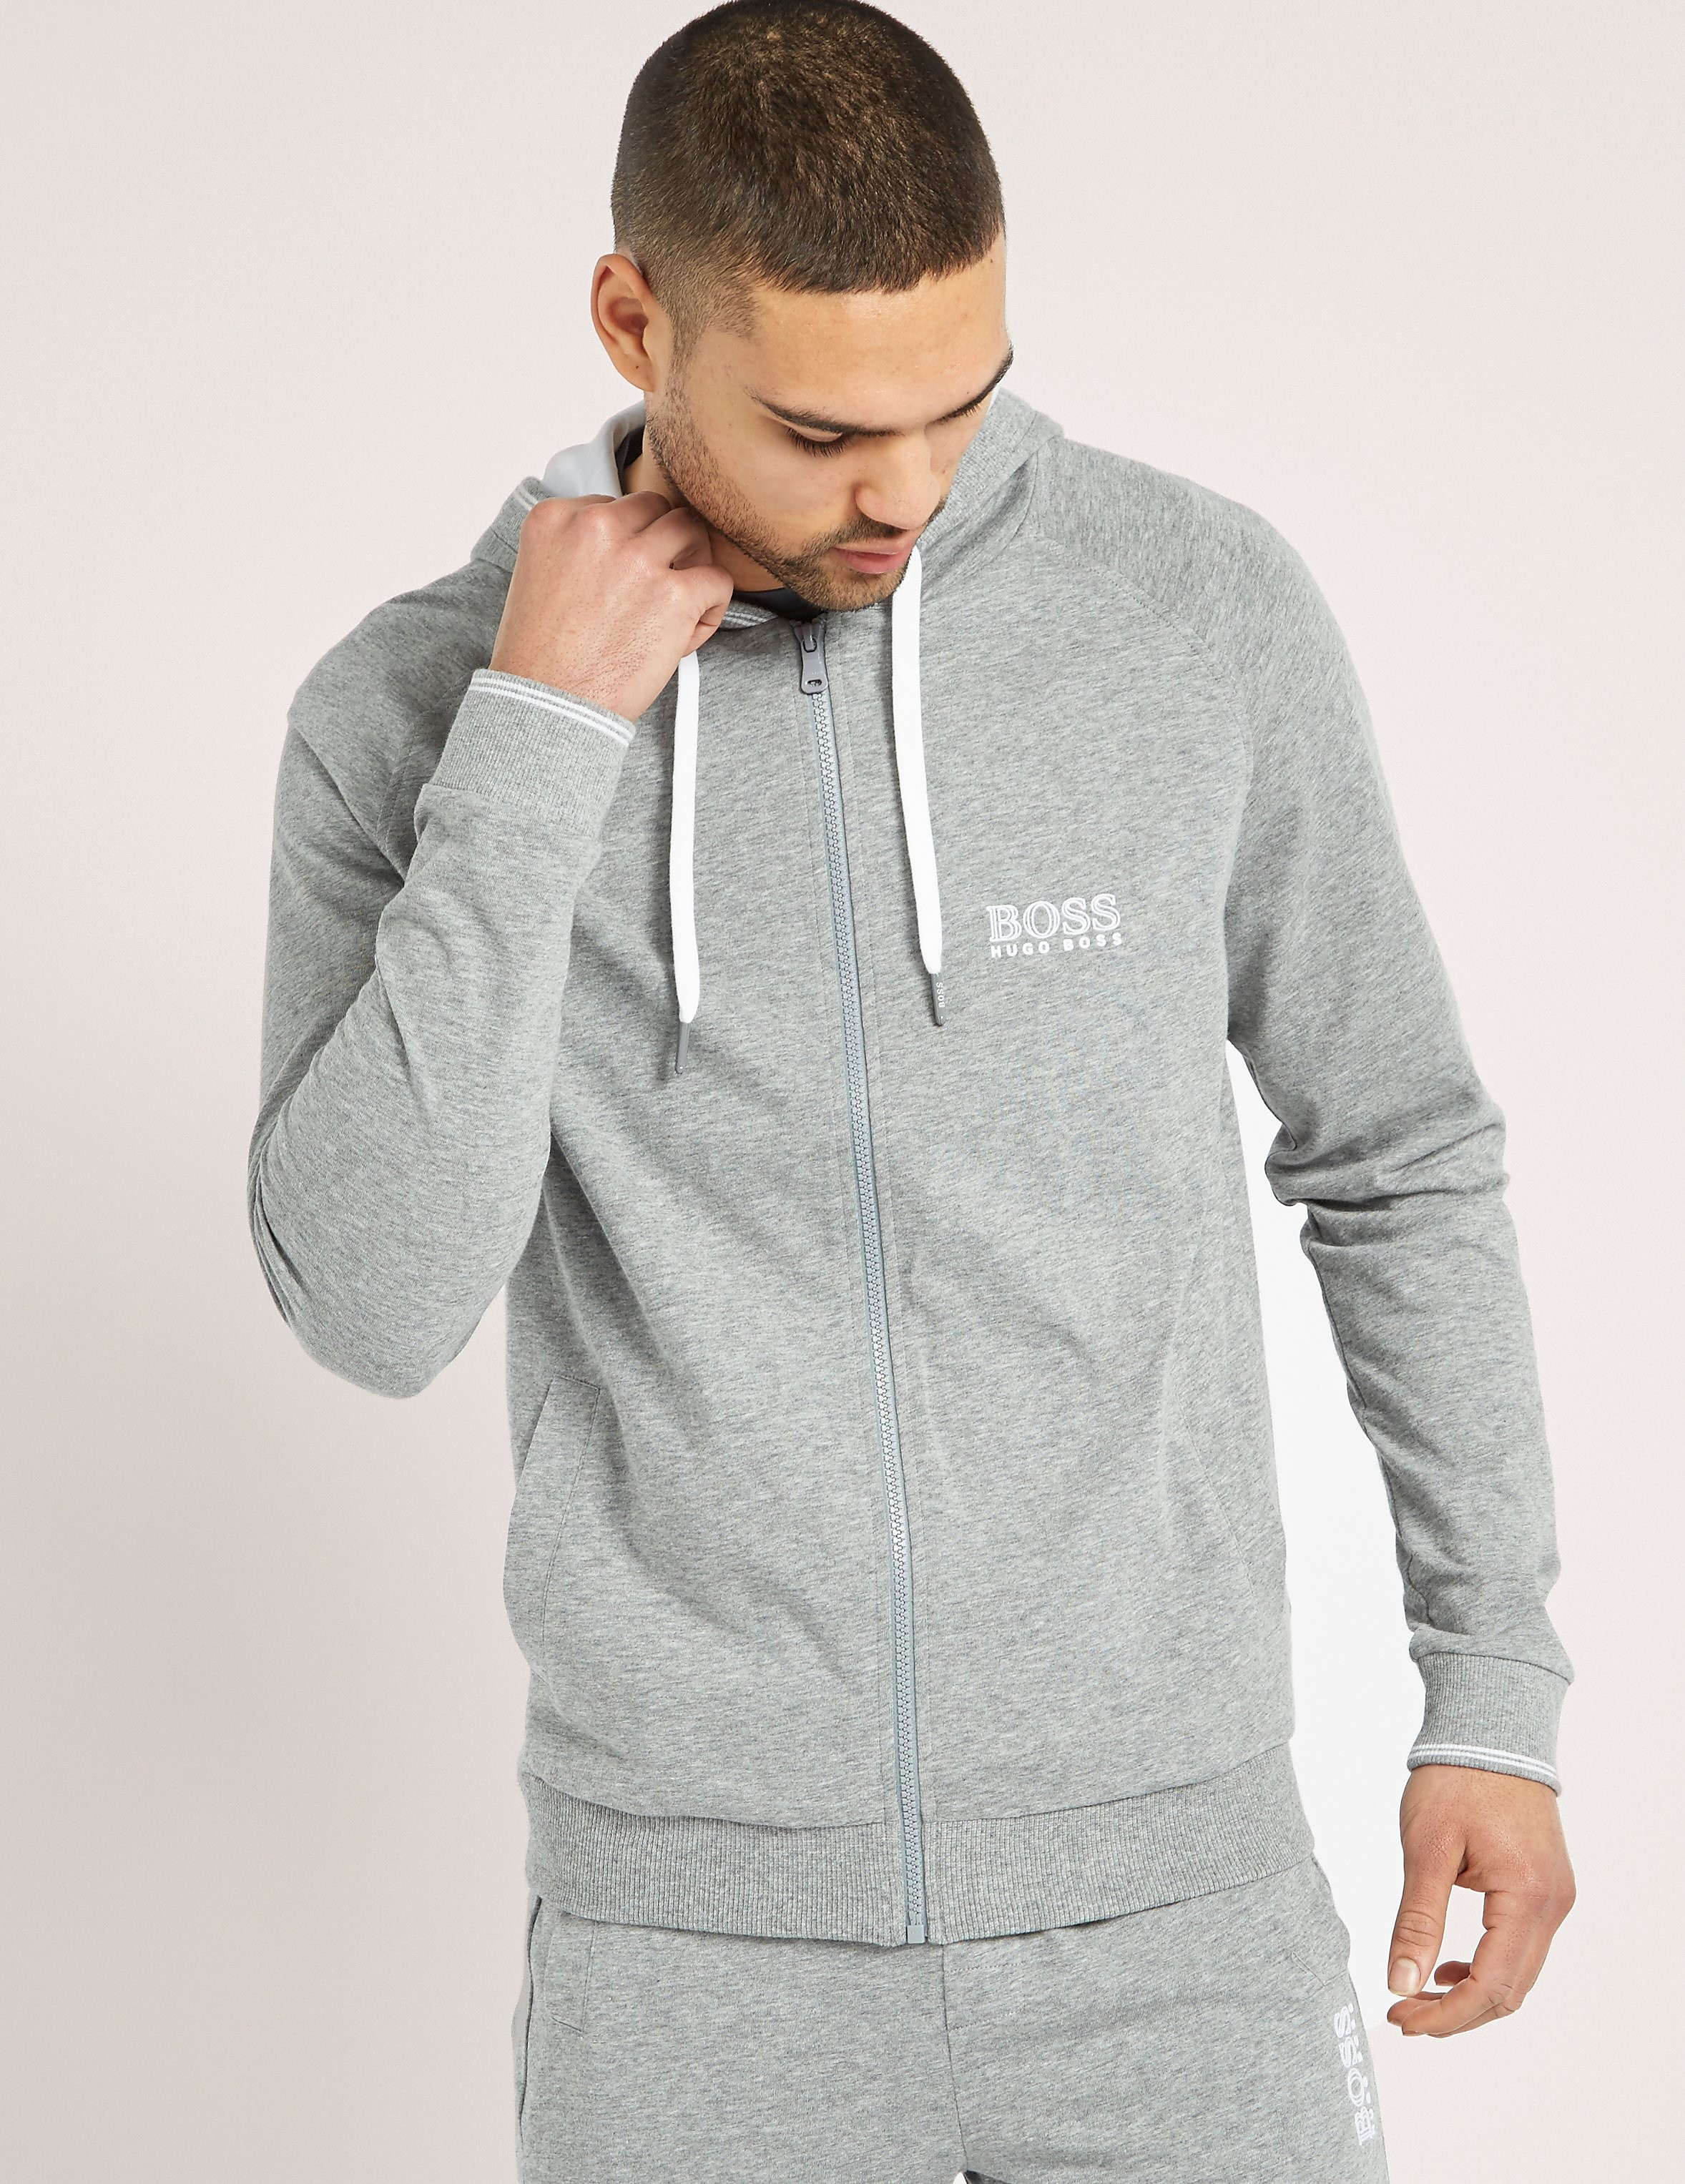 BOSS Authentic Full Zip Hoody